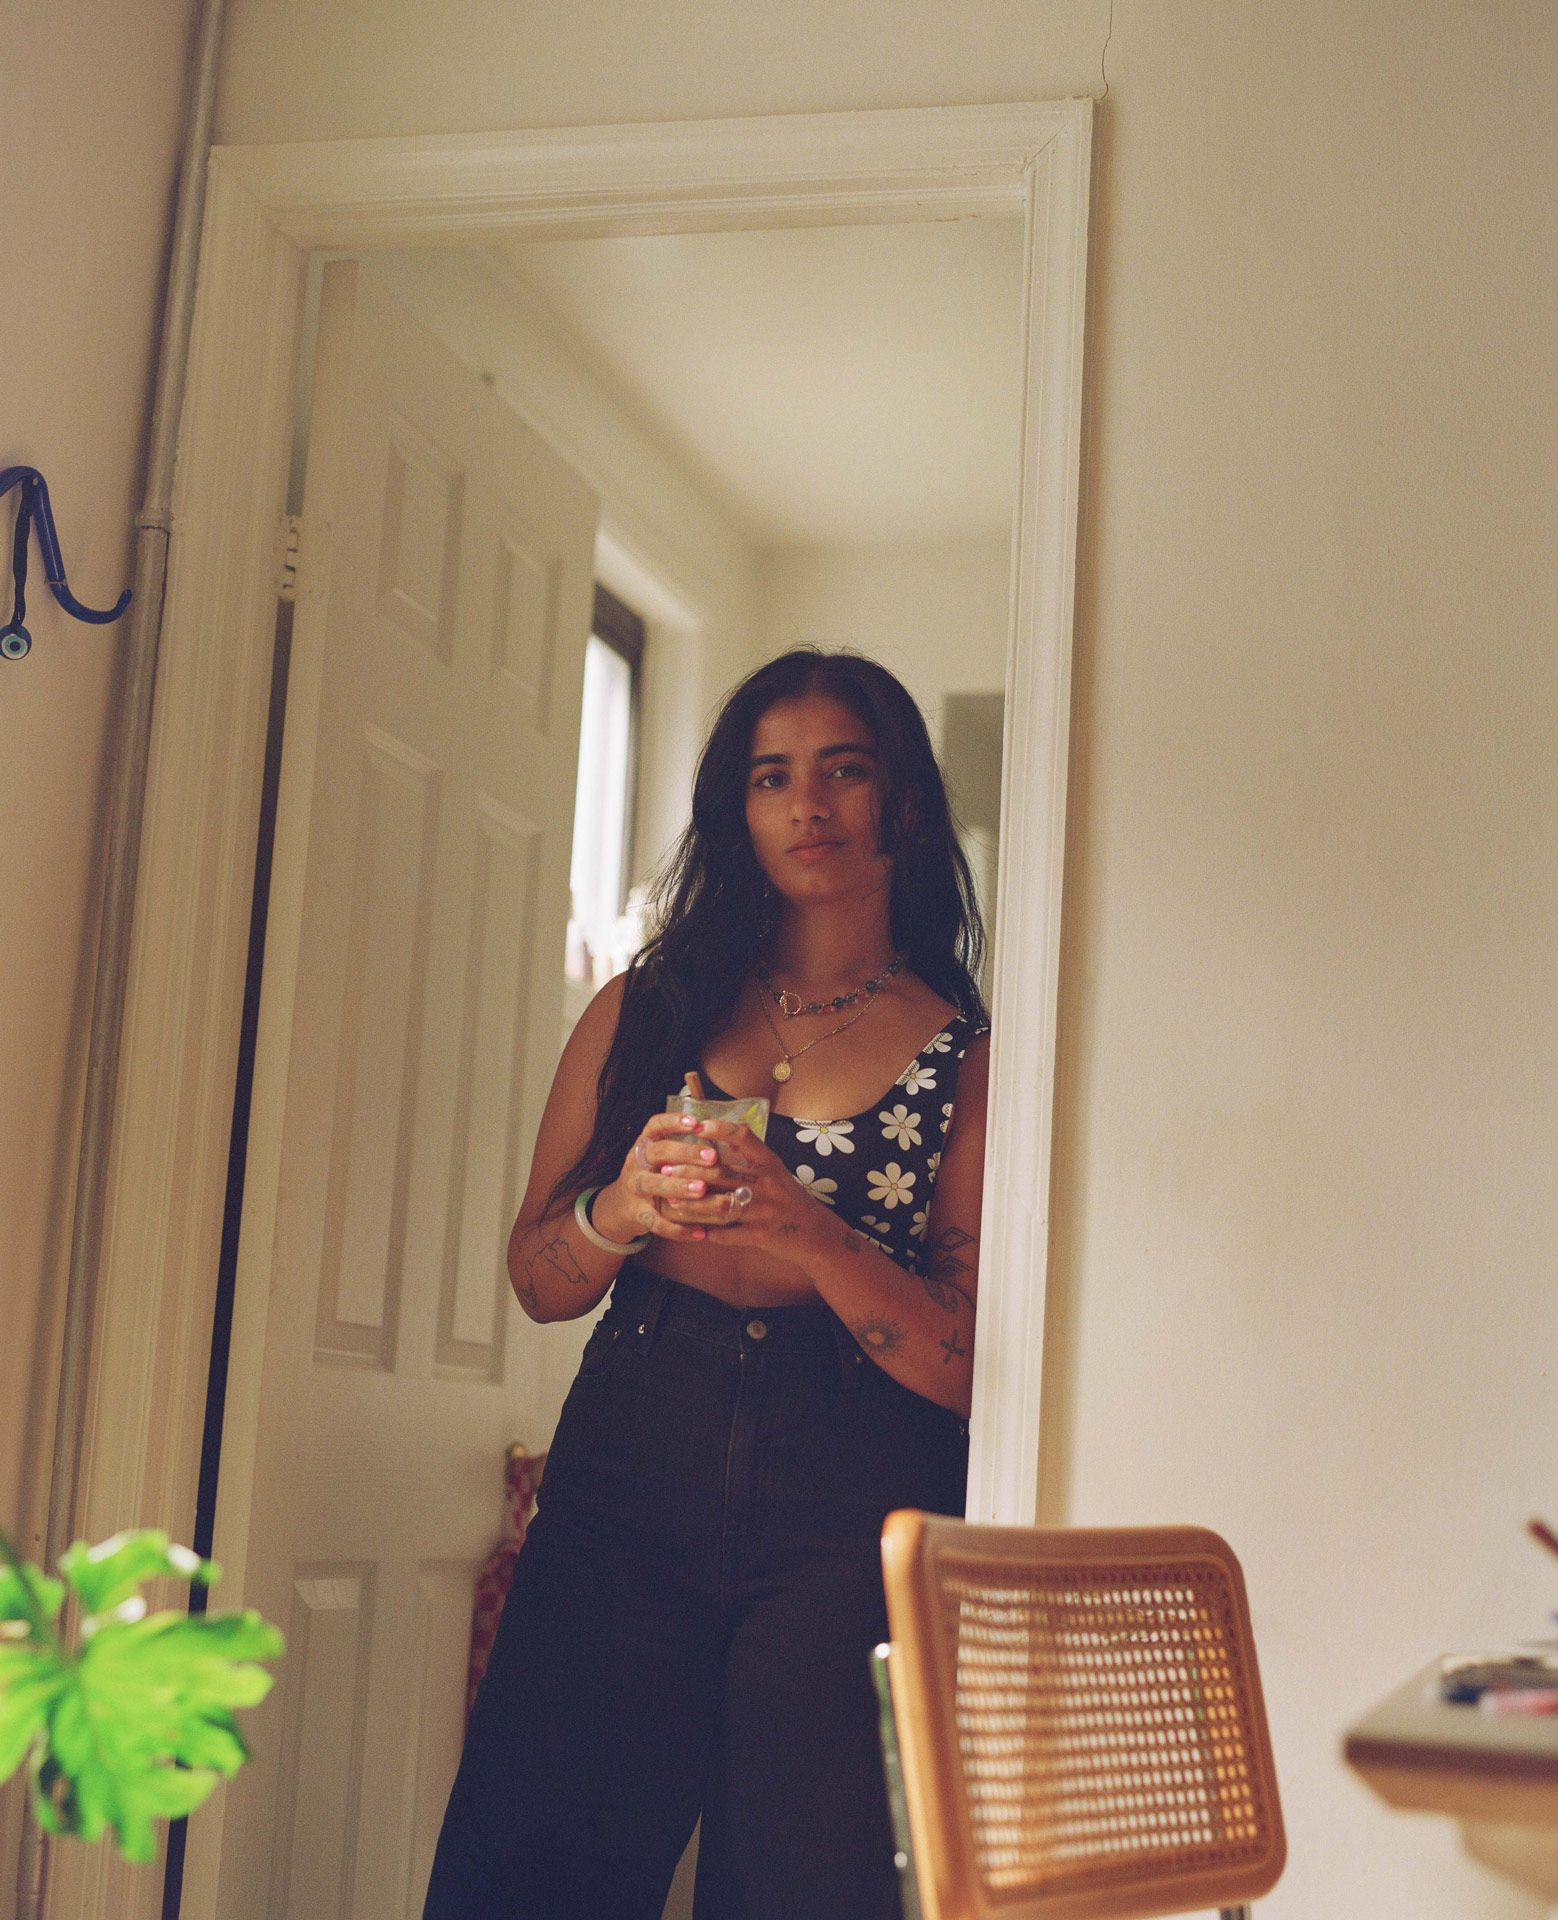 writer Fariha Roisin standing in her kitchen doorframe smiling and looking at camera holding teacup photographed by Oumayma B. Tanfous for Levi's